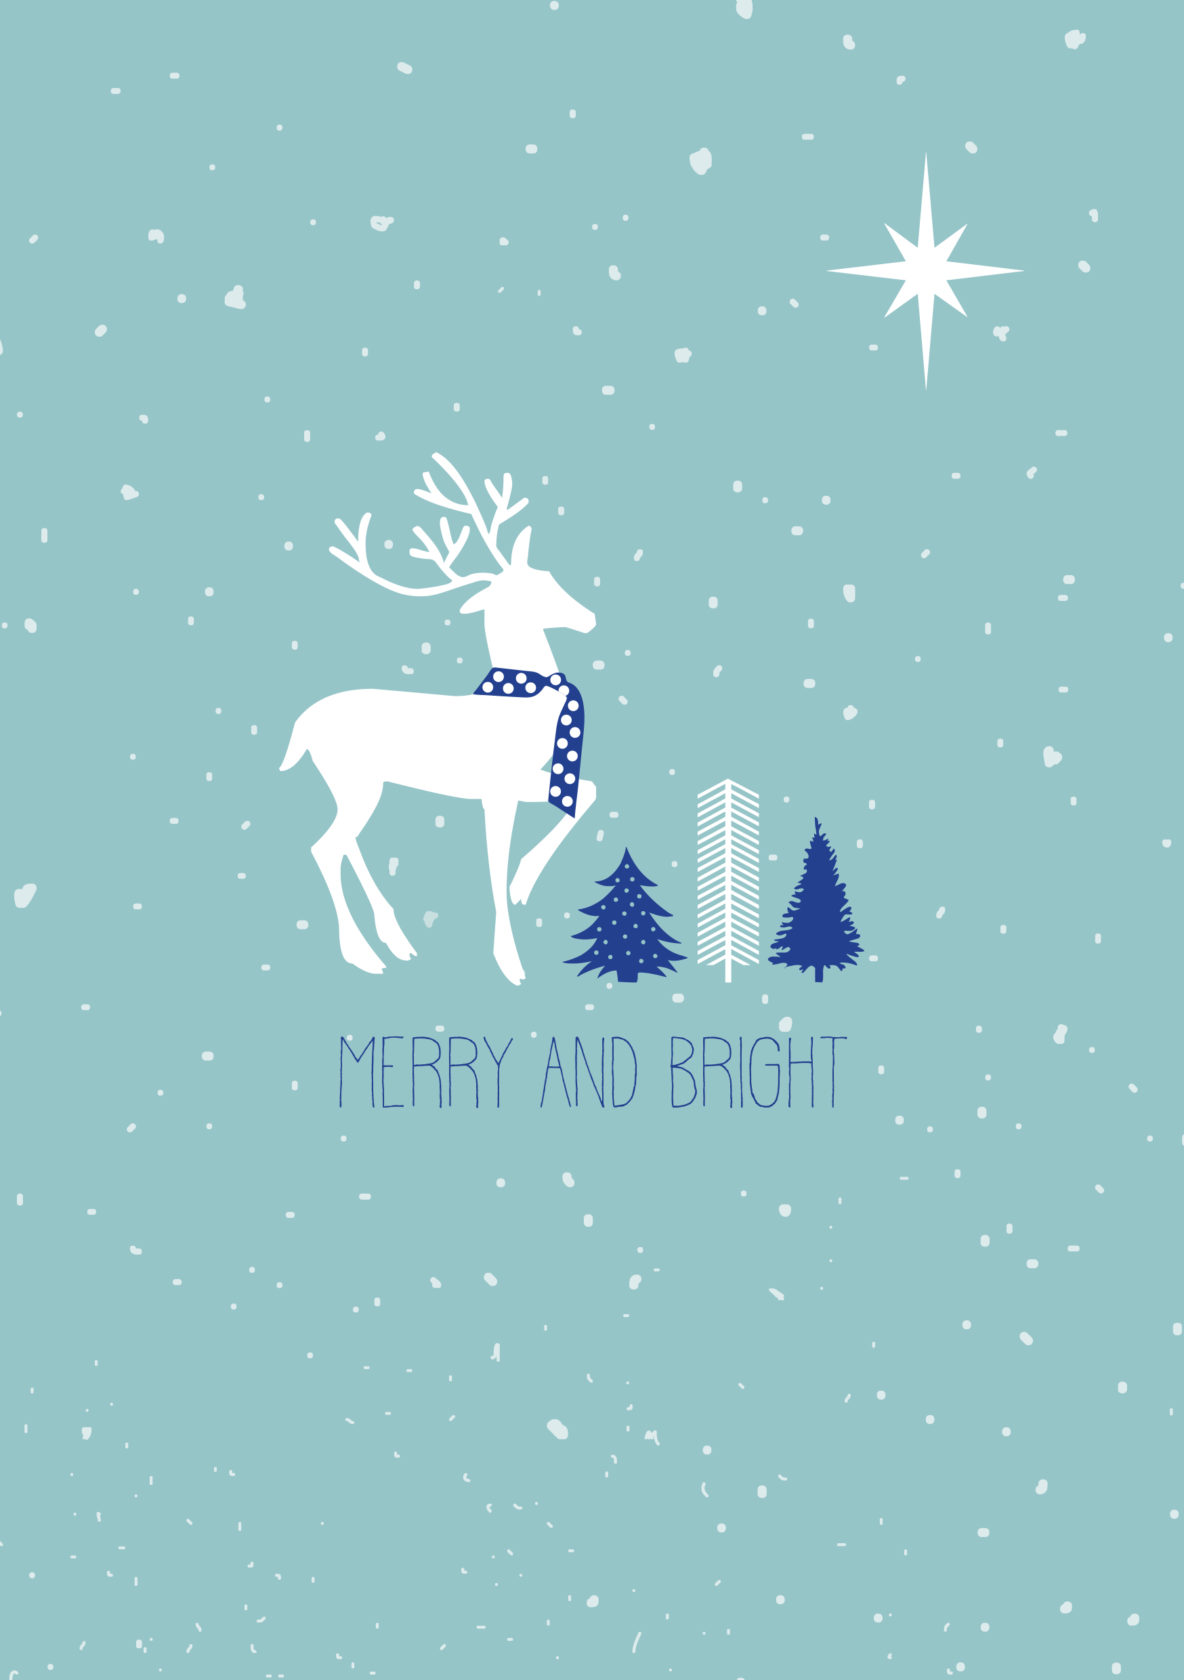 Christmas cards now available to buy - The Lewy Body Society